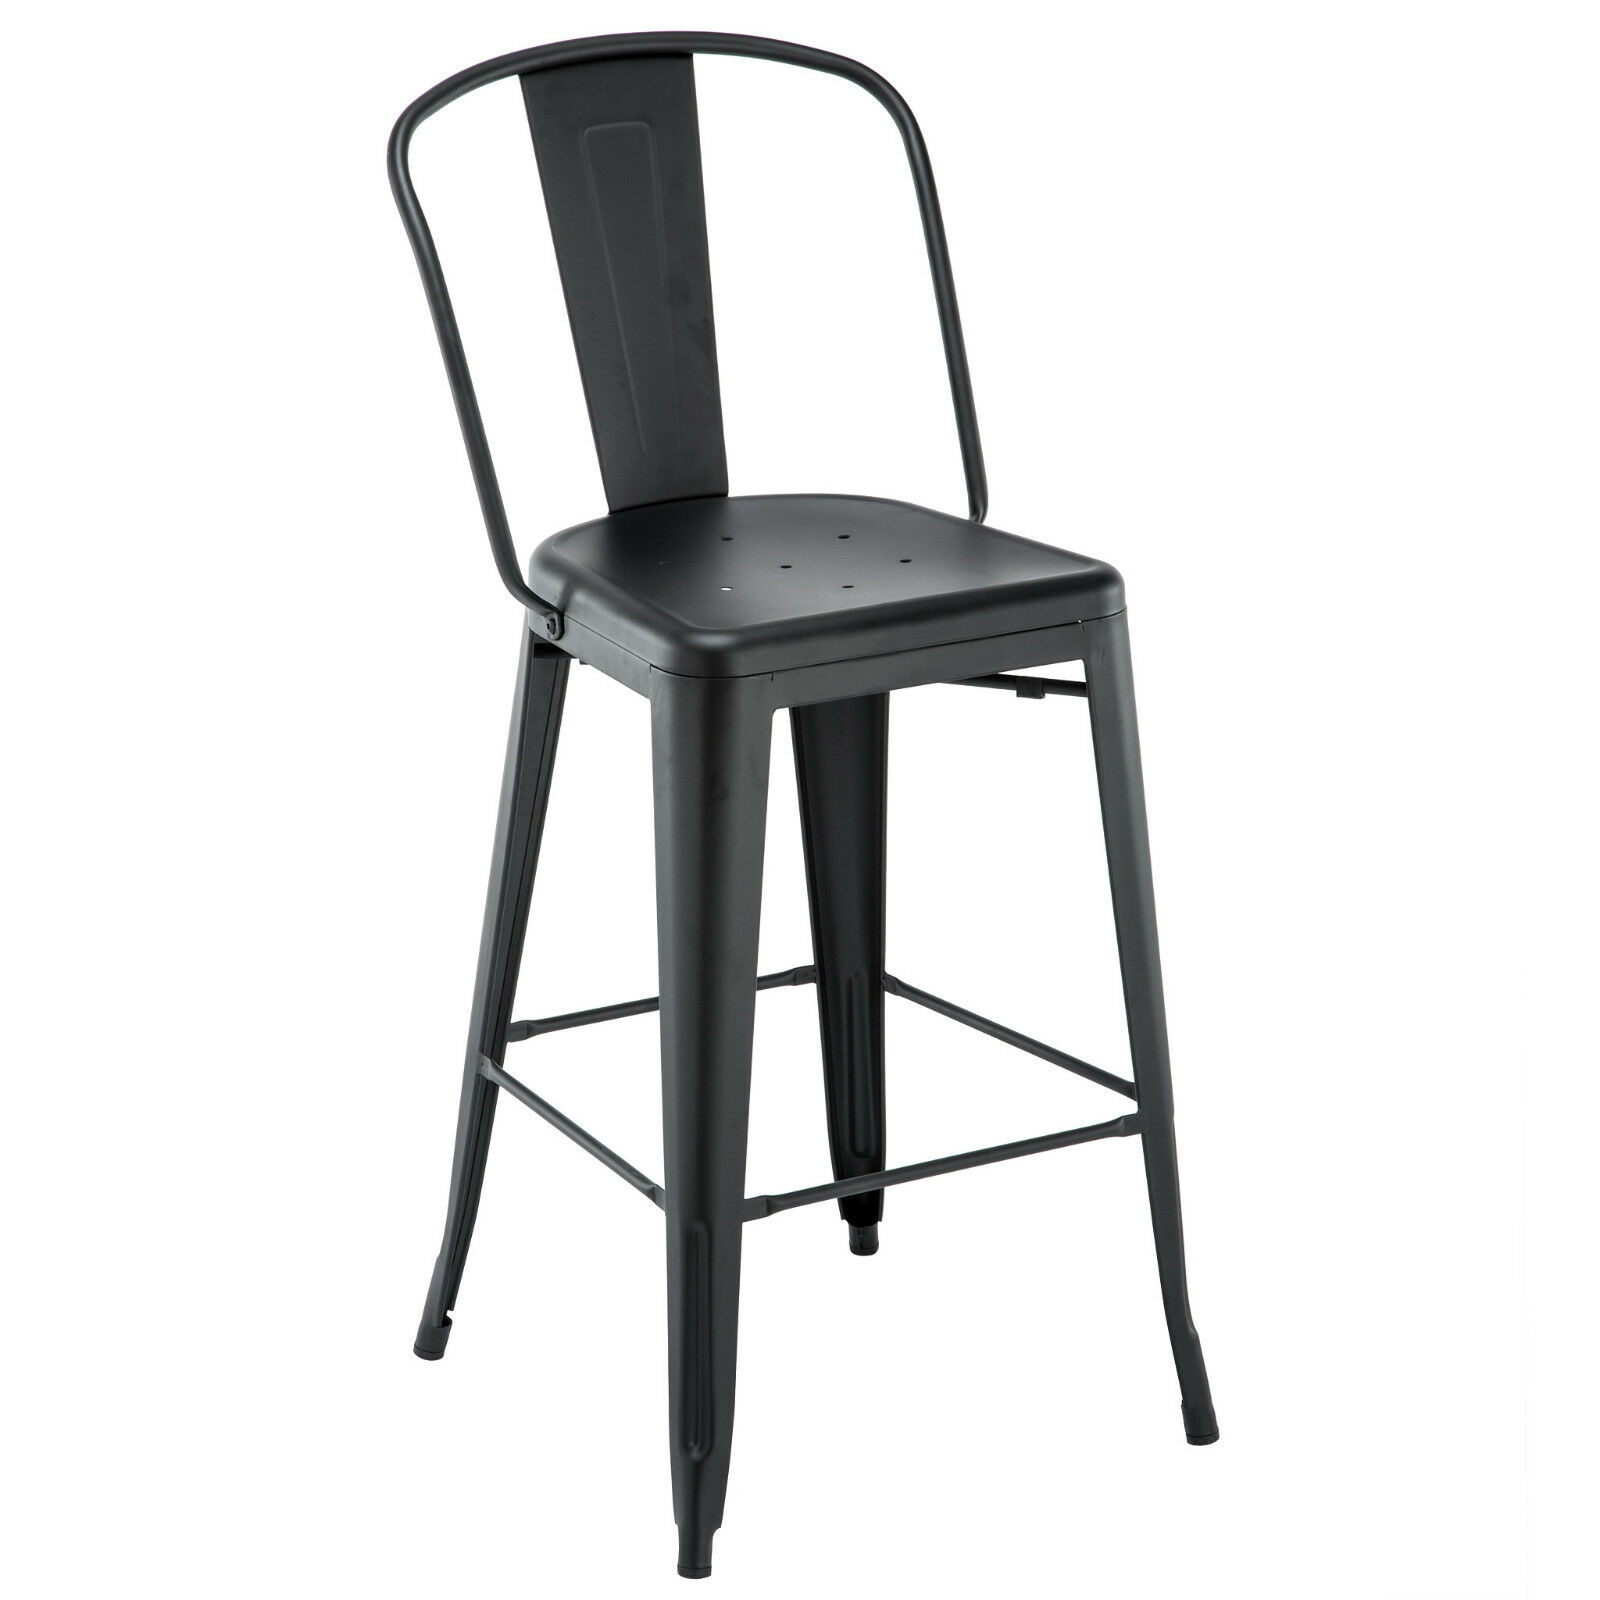 Surprising Details About New Oversized Viktor Steel Restaurant Bar Stool With Black Powder Coat Finish Alphanode Cool Chair Designs And Ideas Alphanodeonline